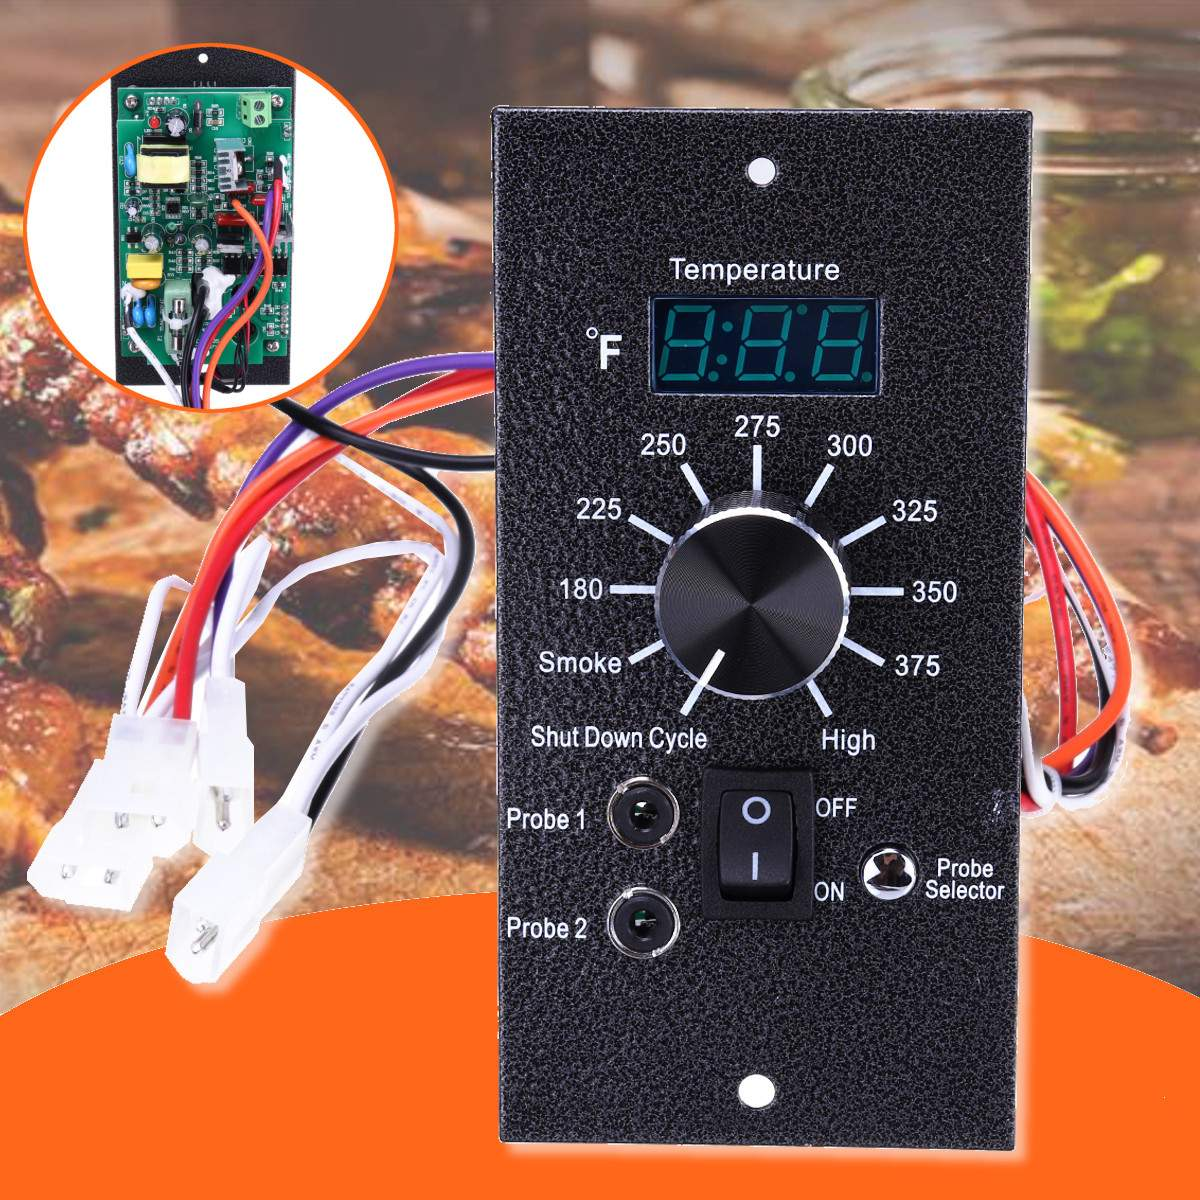 AC 120V Digital Thermostat Controller Board Oven Temperature Control Traeger Pellet Grill Fireplace Parts Replacement Fahrenheit